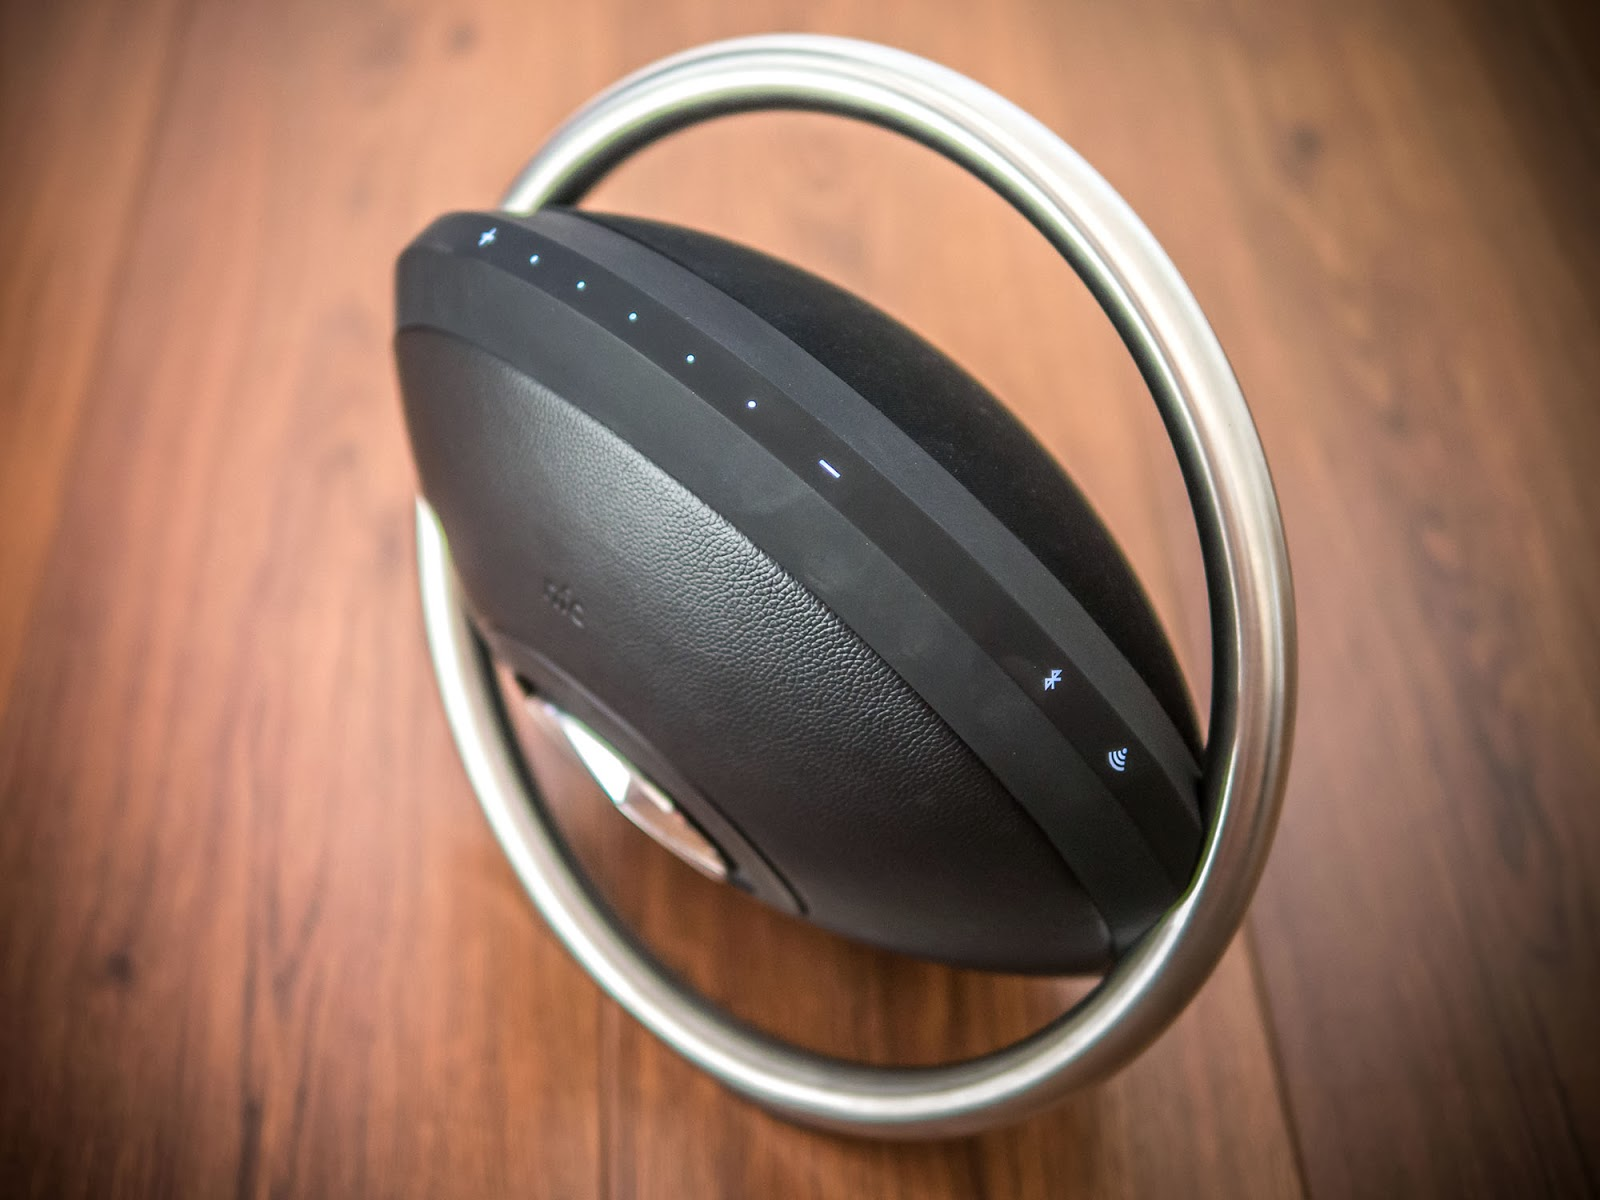 Oluv's Gadgets: Review: Harman Kardon Onyx - the ultimate Boombox